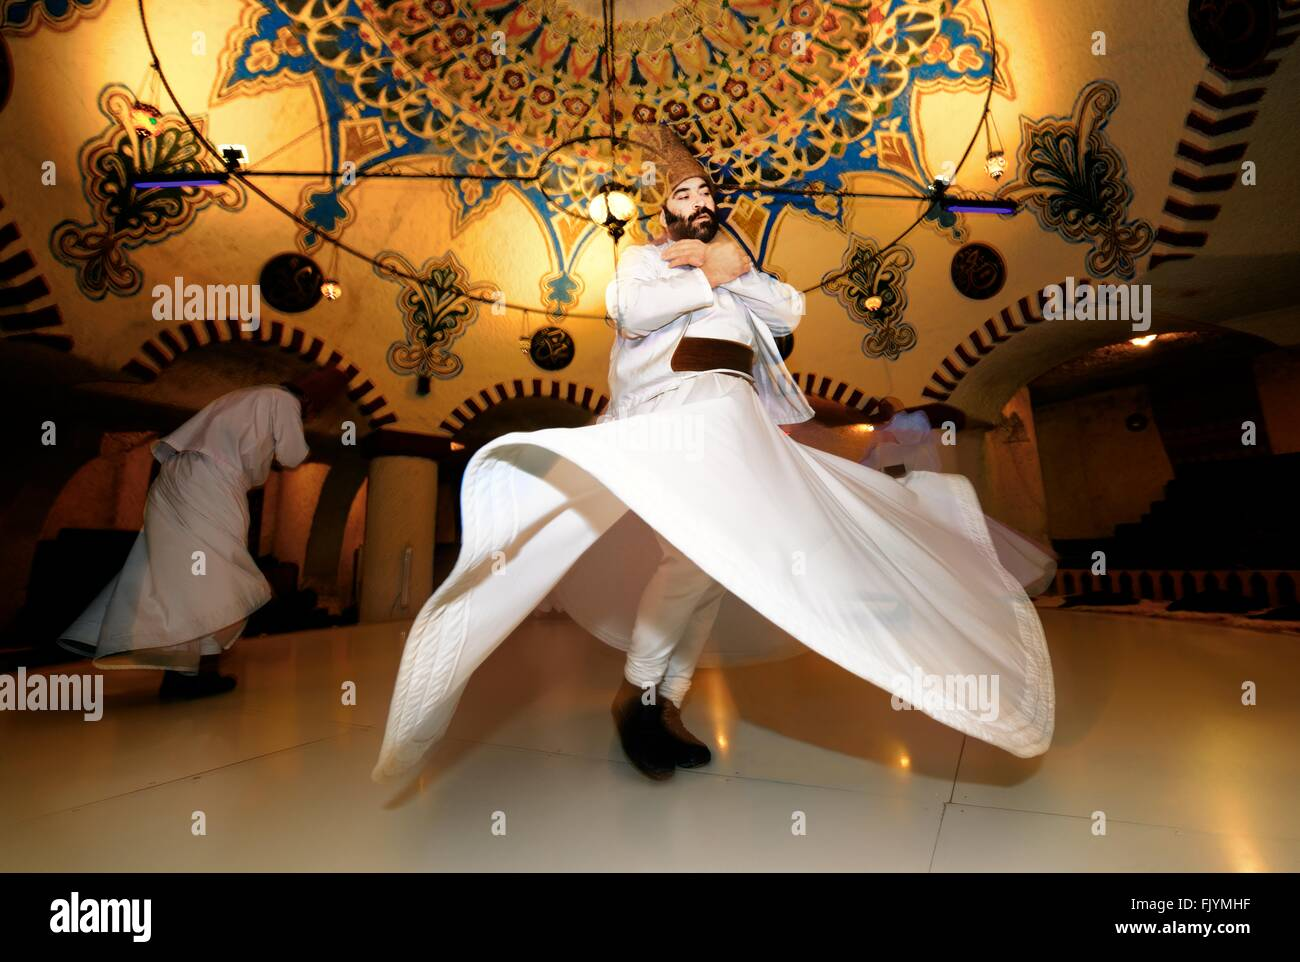 Traditional Turkish Sufi Whirling Dervish spiritual evening at Dervis Evi on in town of Ortahisar, Goreme, Cappadocia, - Stock Image